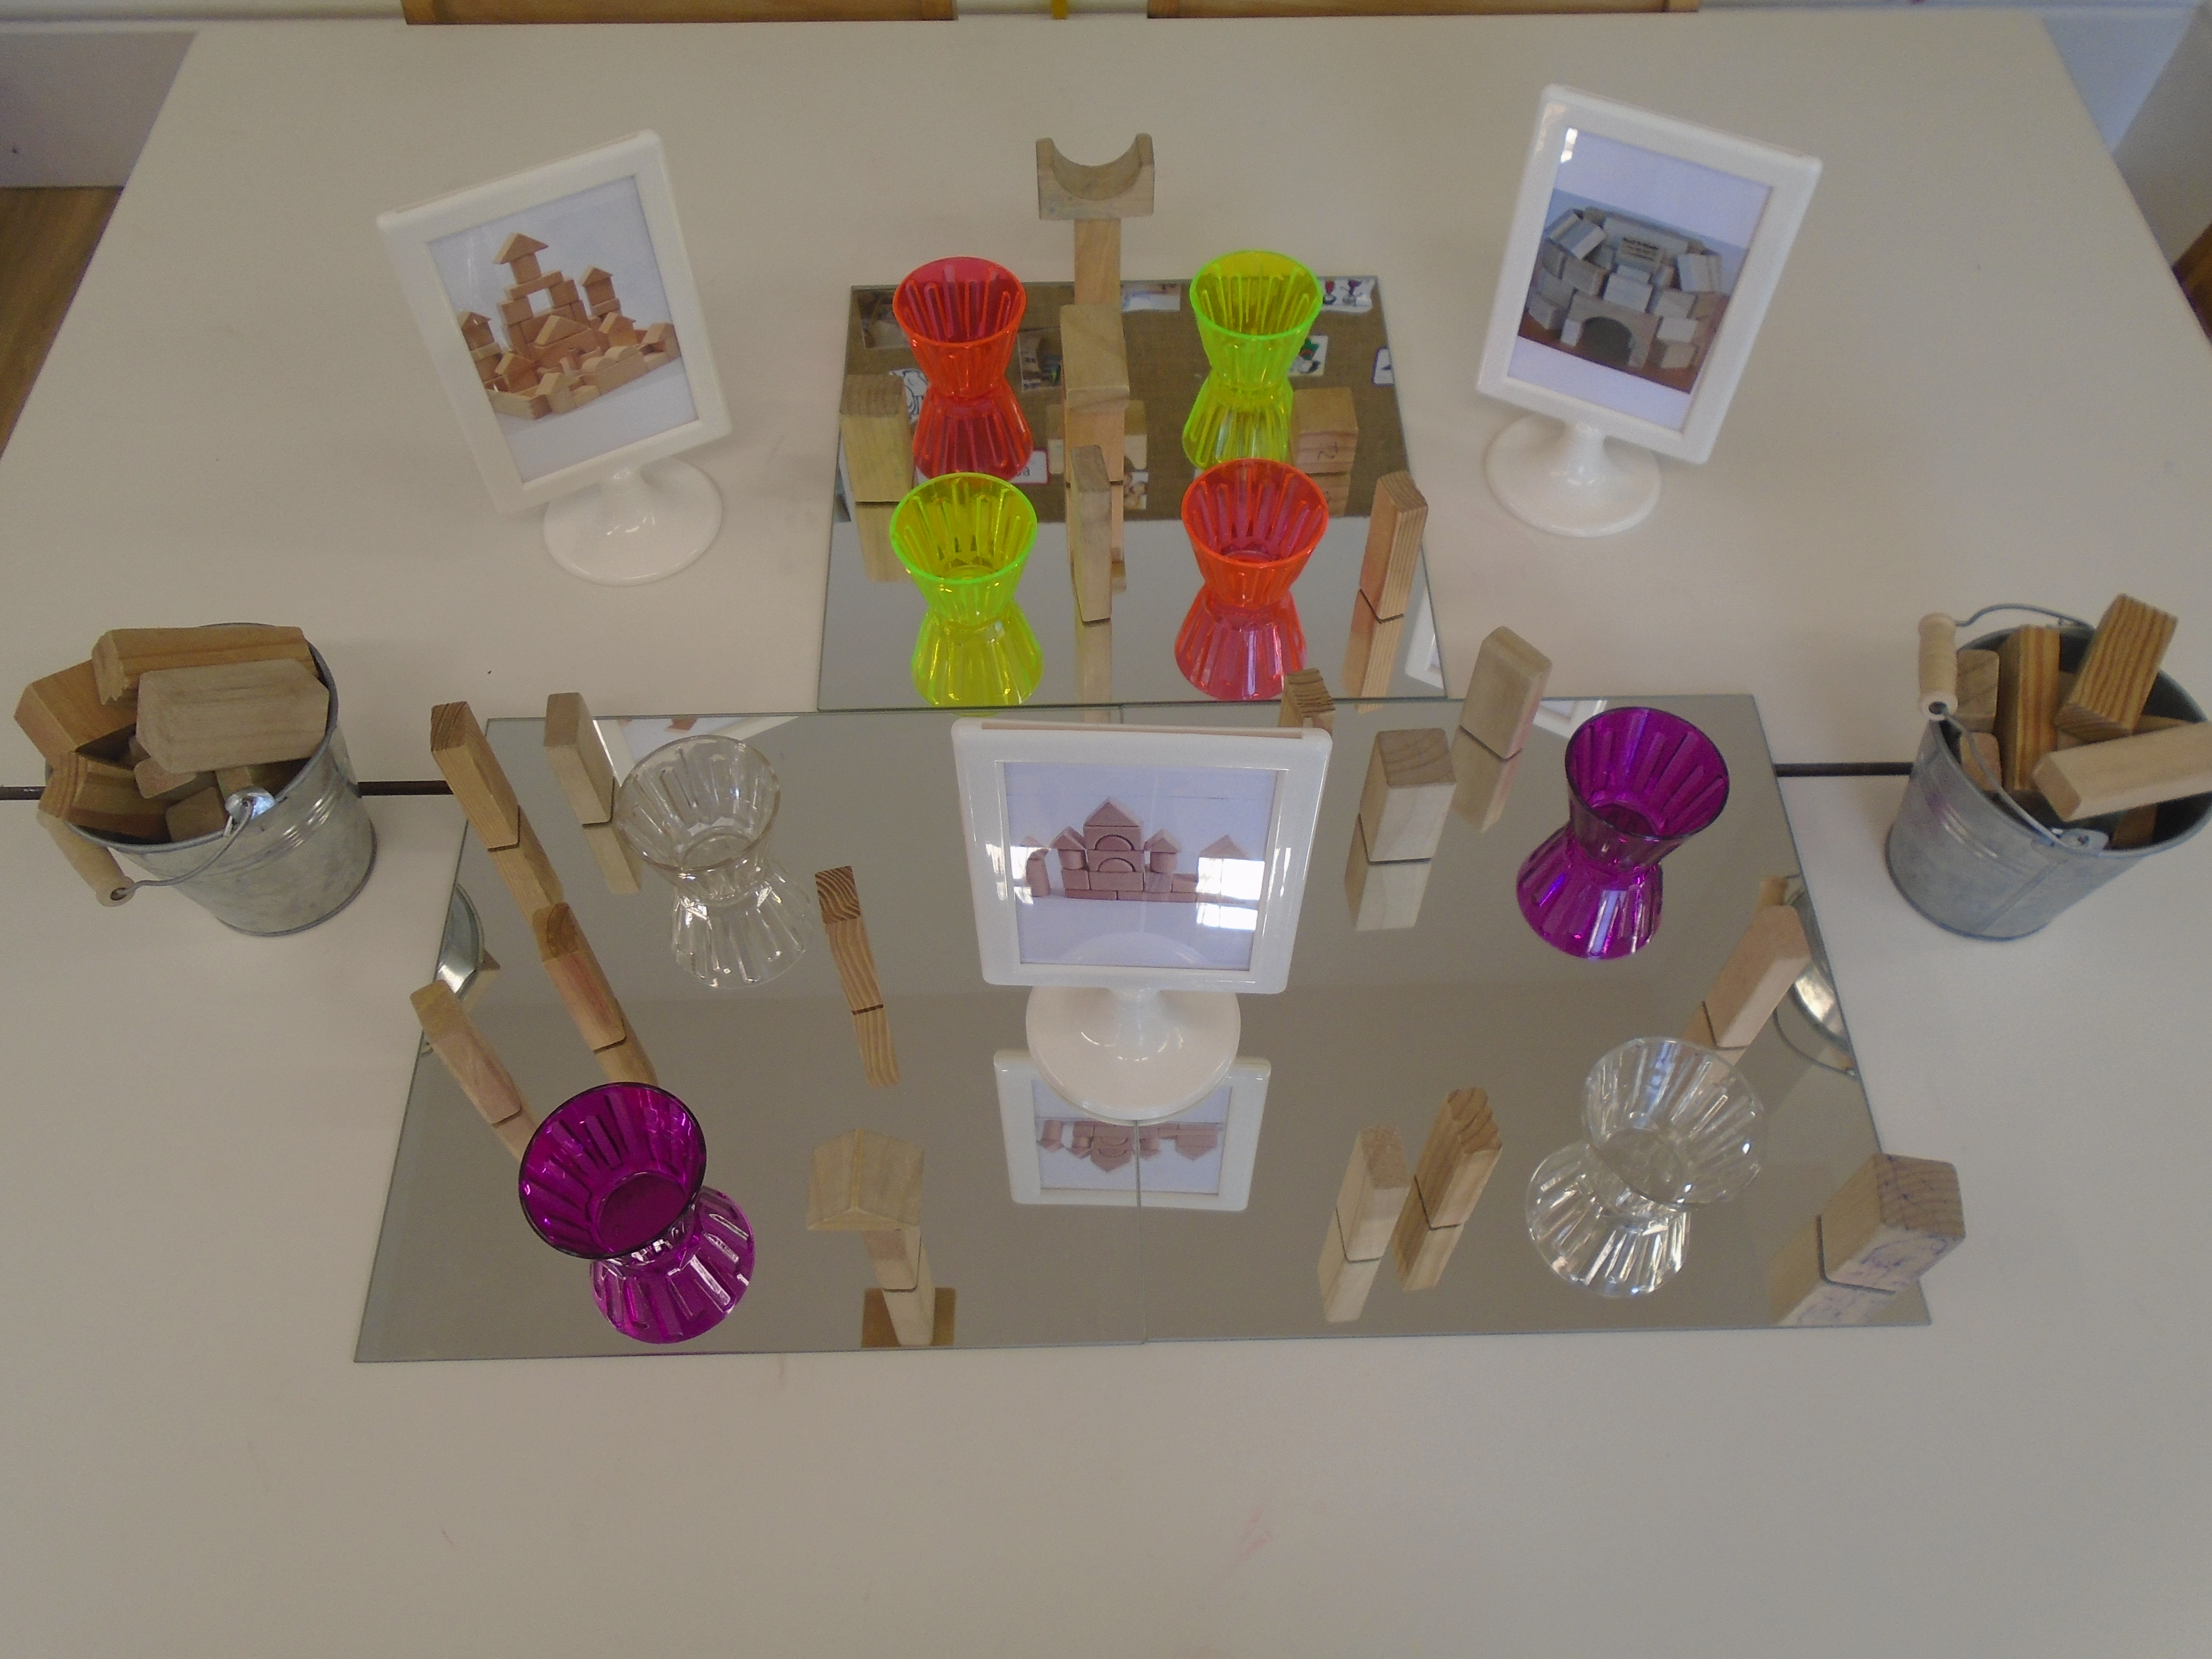 Gloucester Pre-school have been looking at photos of different buildings and structures, then using the ideas they have seen to make arrangements with all types of shapes